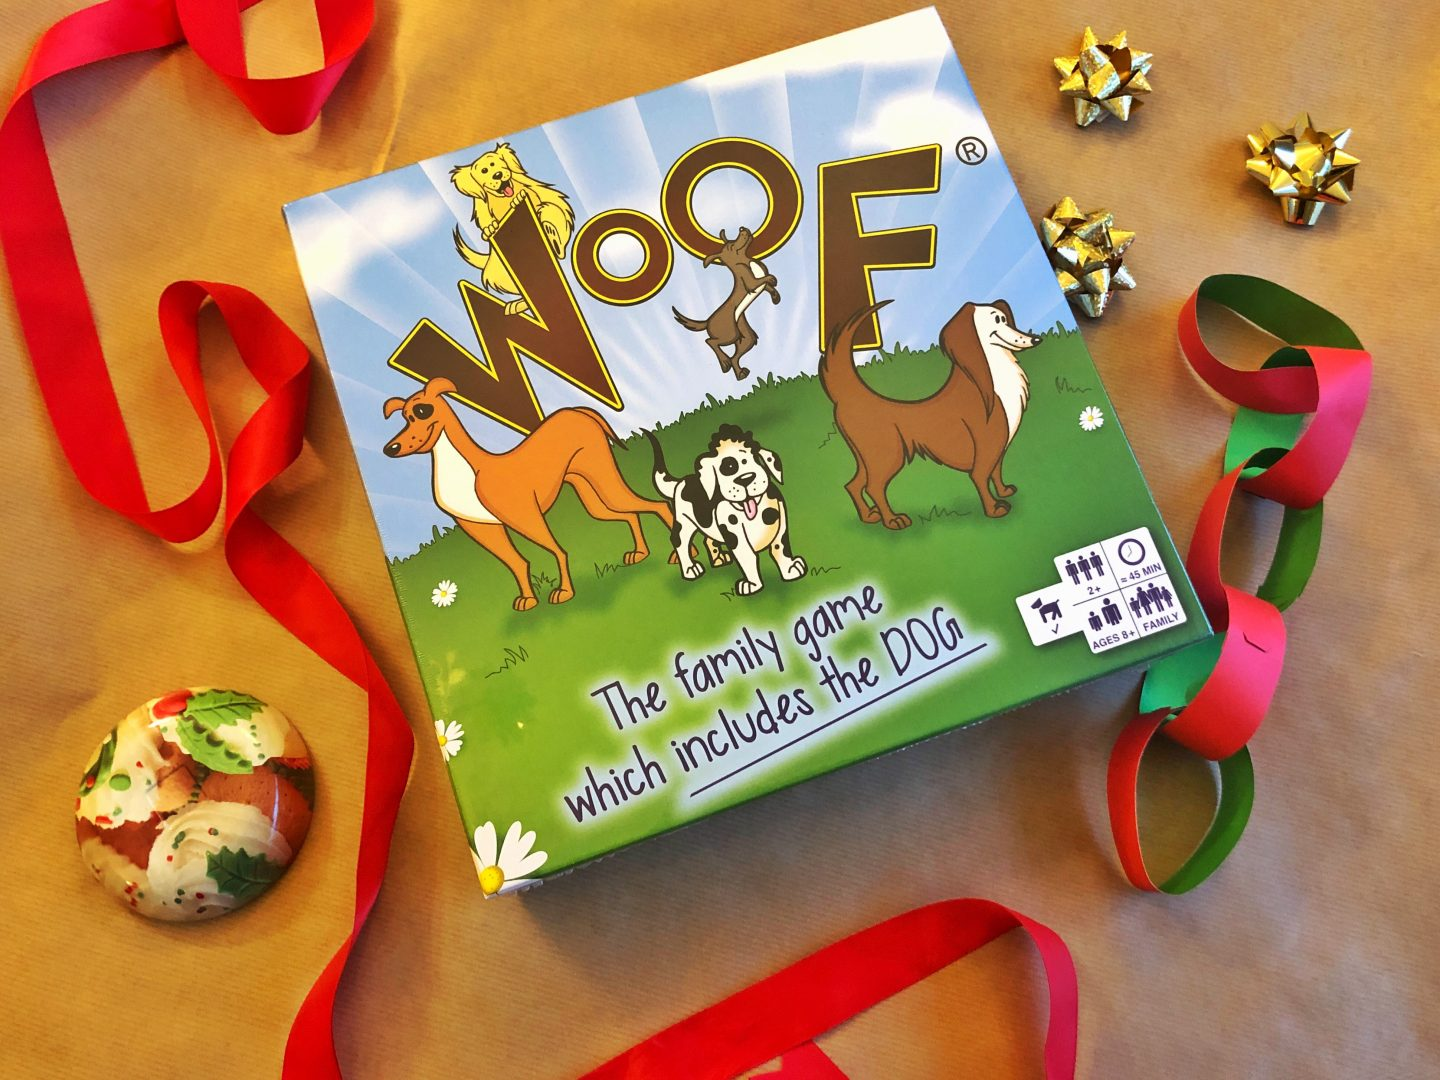 Festive flatlay of the family game which includes the dog, Woof!